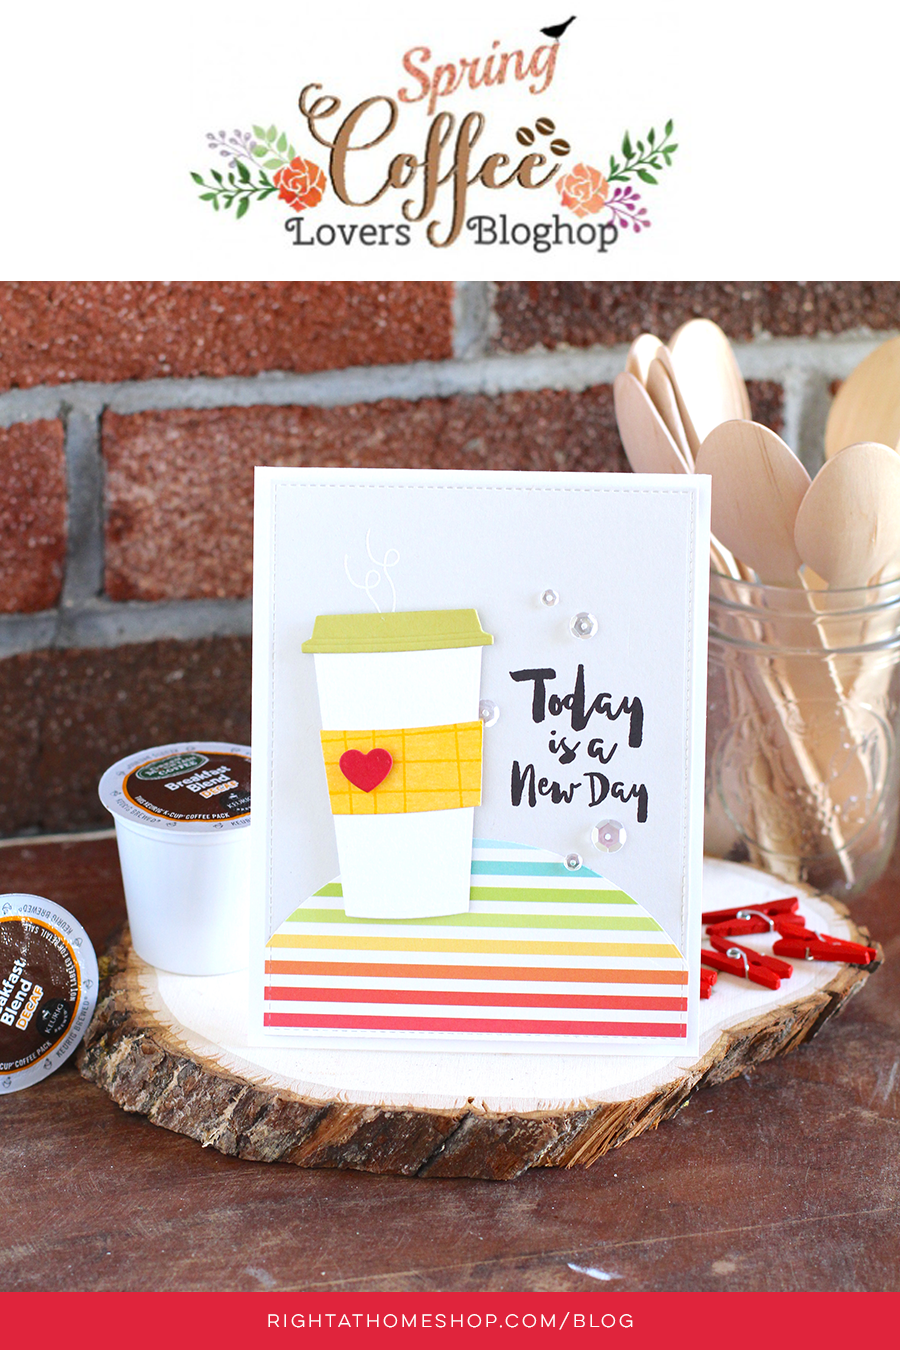 Coffee Lovers Blog Hop // Spring 2016 - rightathomeshop.com/blog